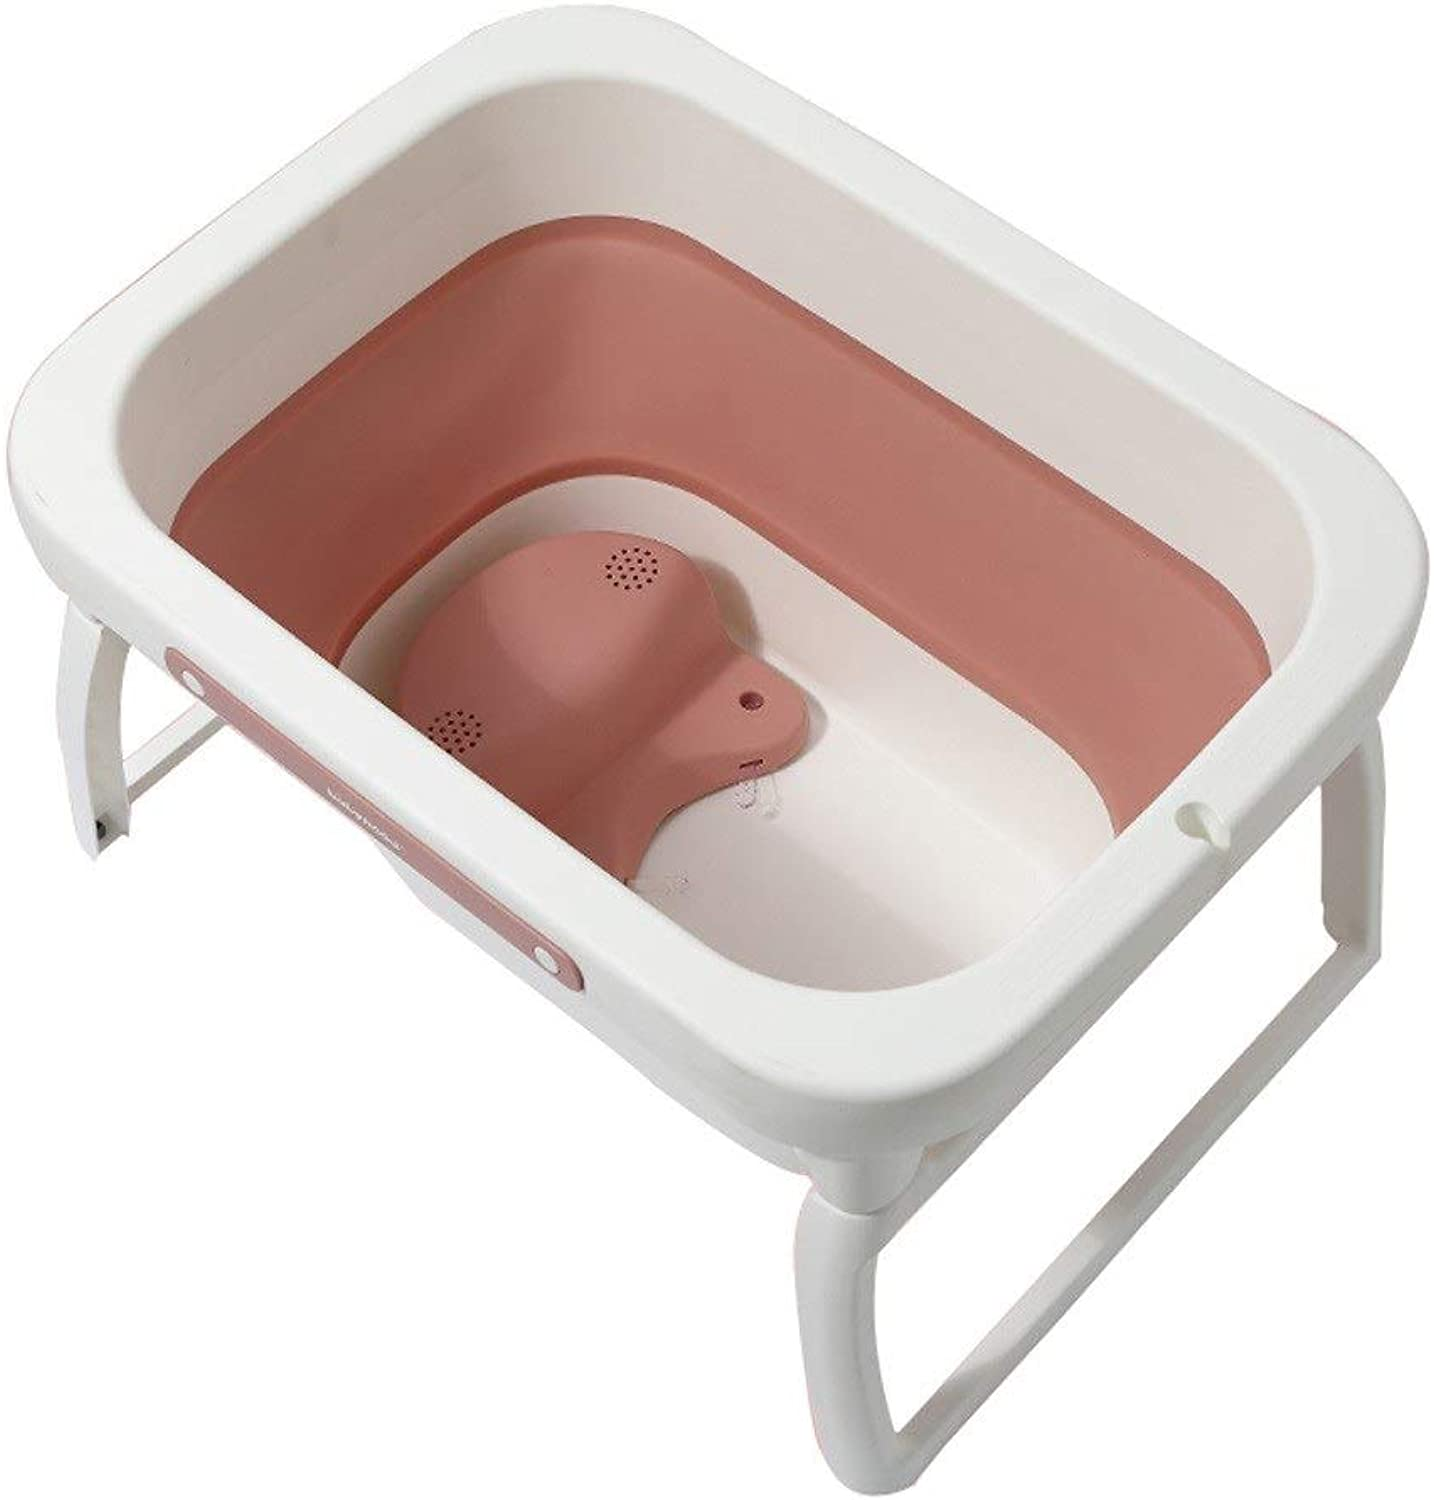 MILU Newborn Baby Foldable Bathtub Baby Swimming Bath Barrel Home Portable Beautifully Made Multi-function Plastic Bathtub (2 colors Optional) (color   orange)